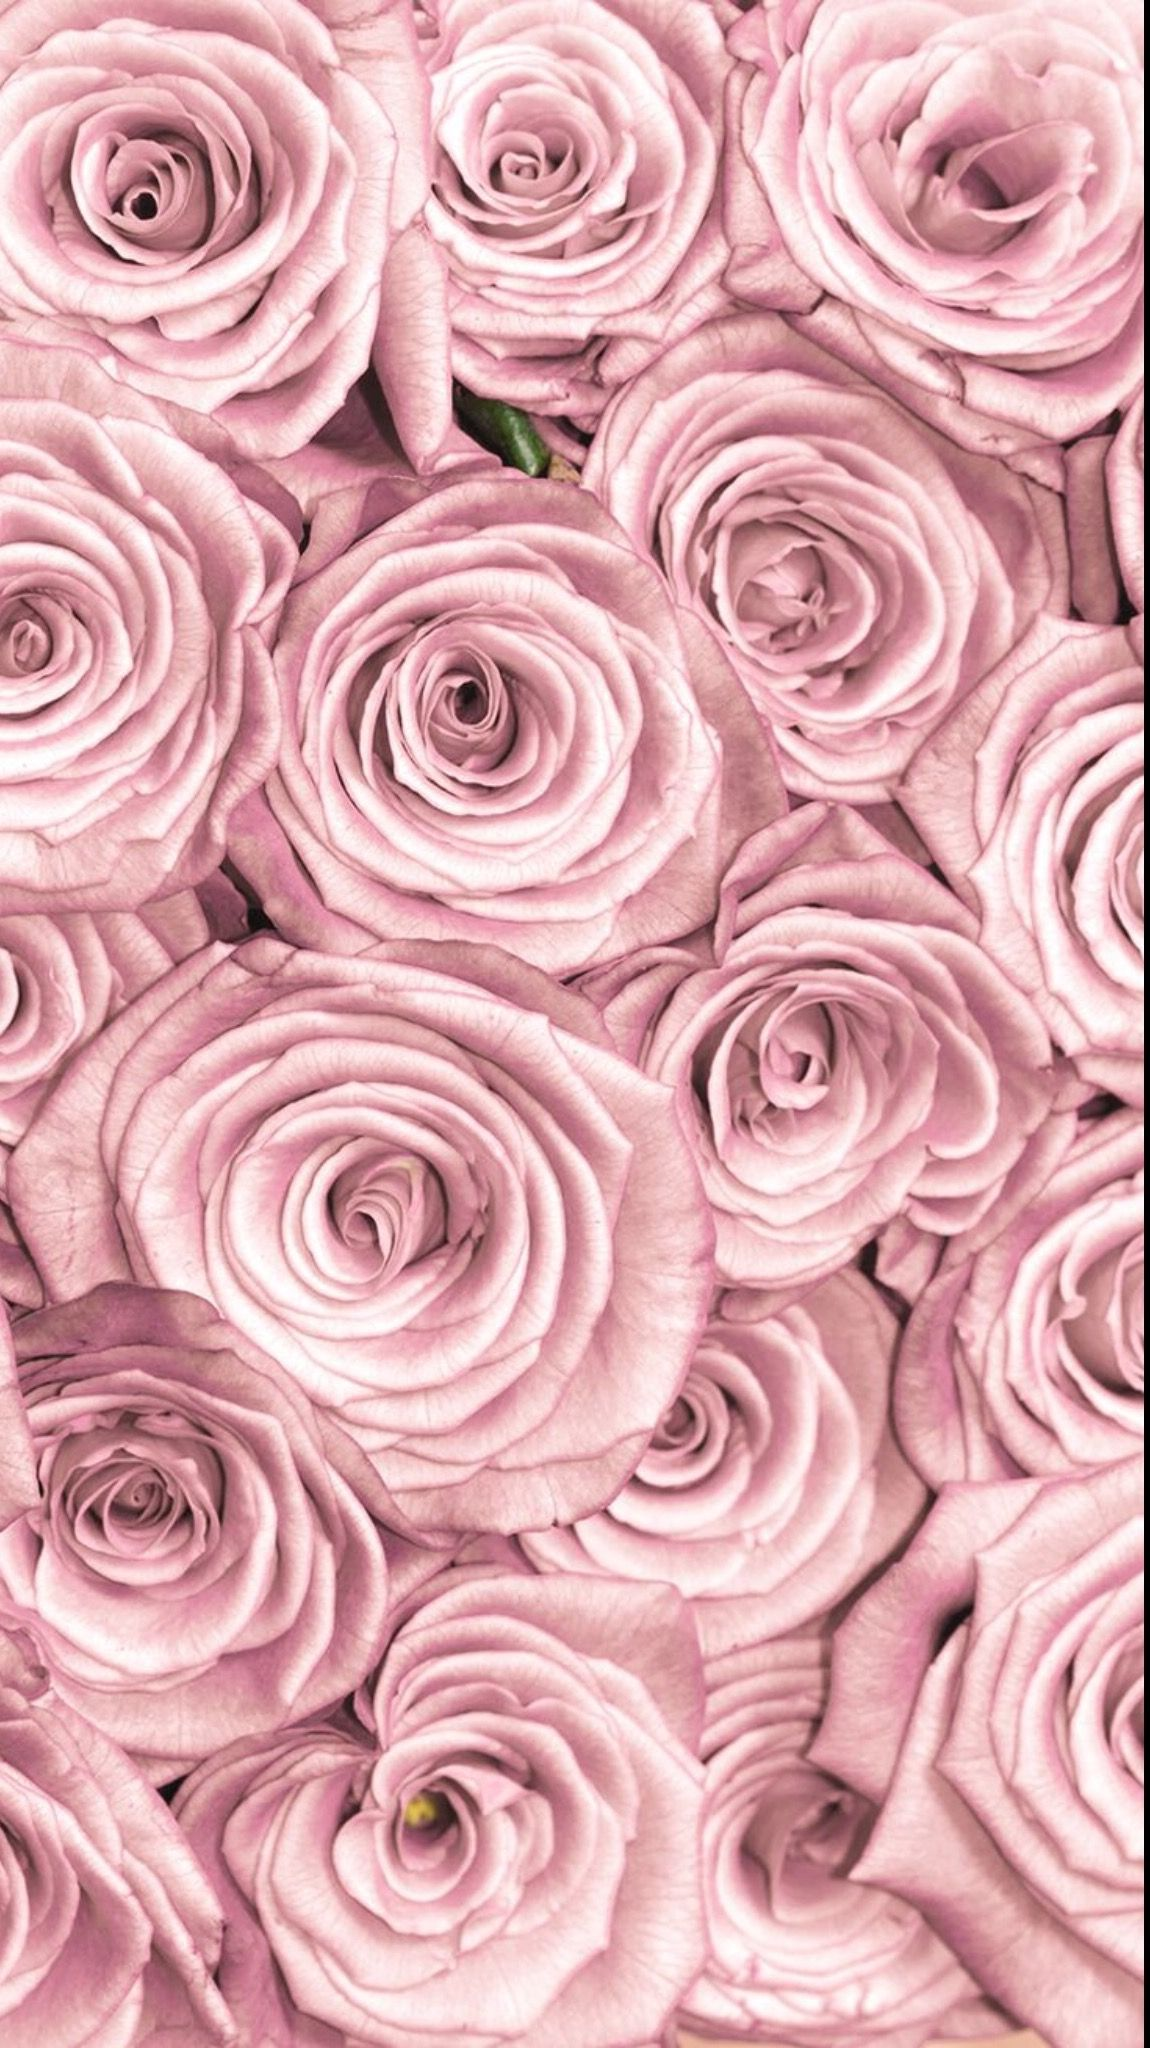 Flowers lockscreen rose gold Rose Gold wallpapers